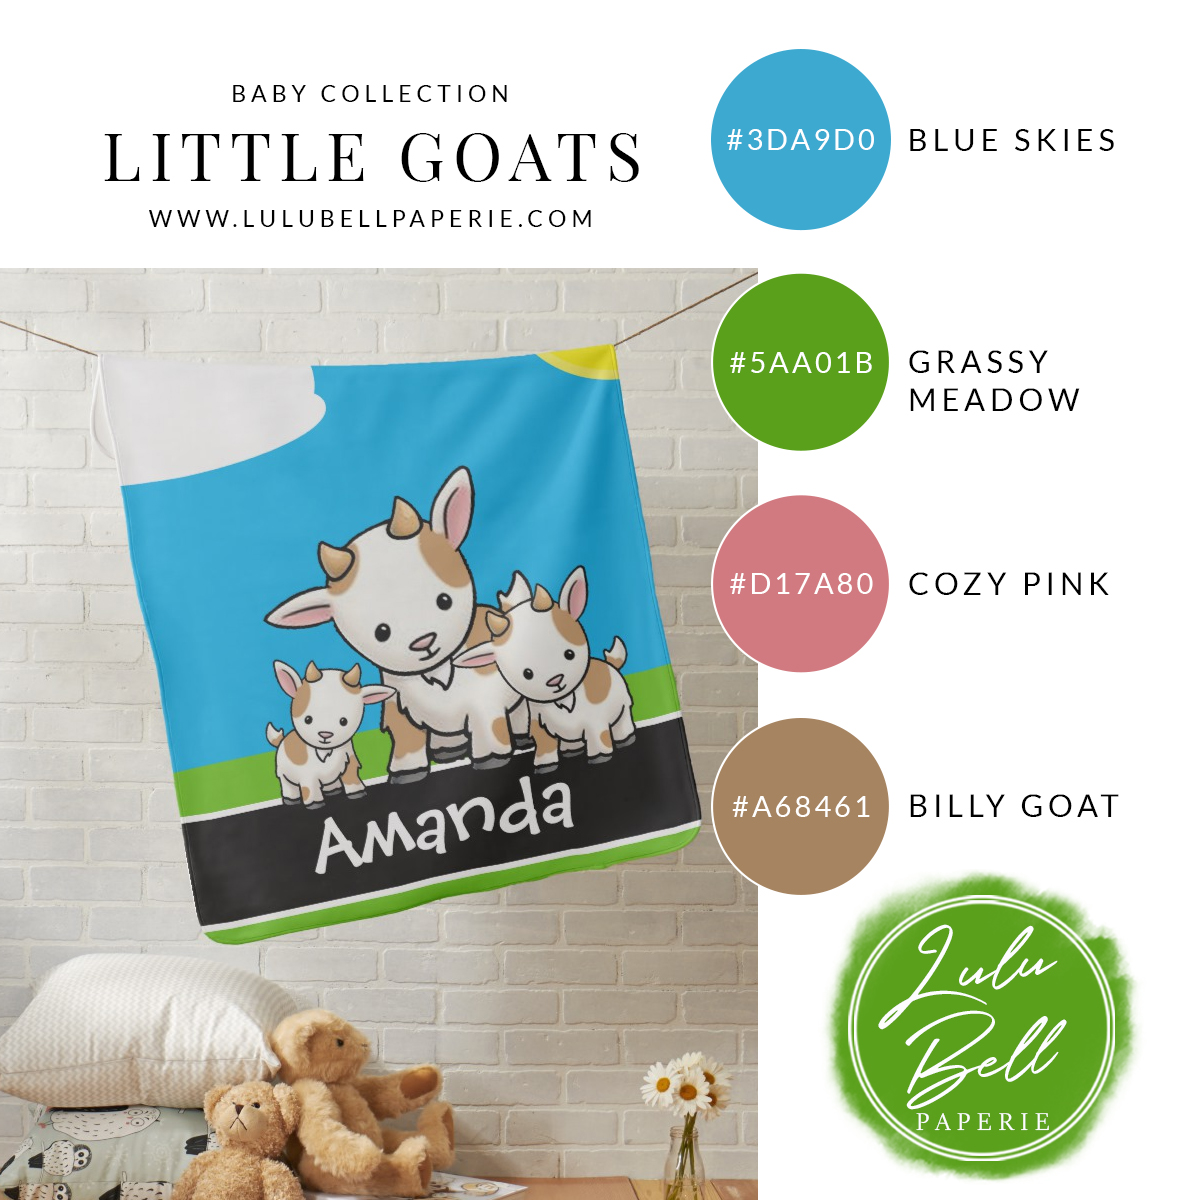 Baby Goat Personalized Blanket and Color Platte Card